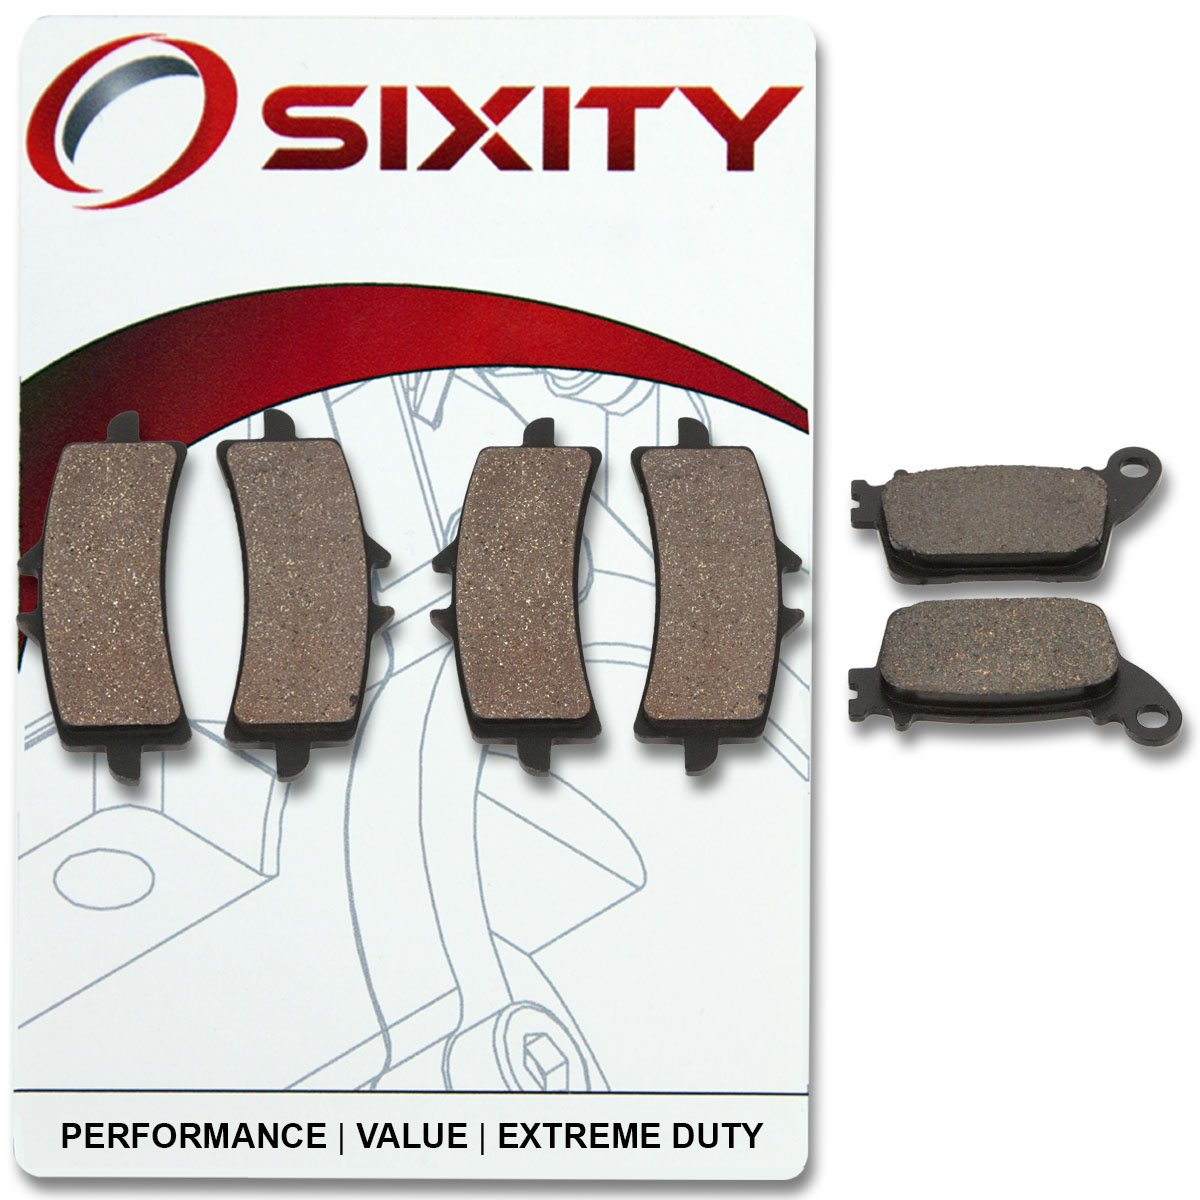 Sixity Front Rear Organic Brake Pads 2003-2007 for Suzuki LT-F500F Vinson 500 4x4 Set Full Kit